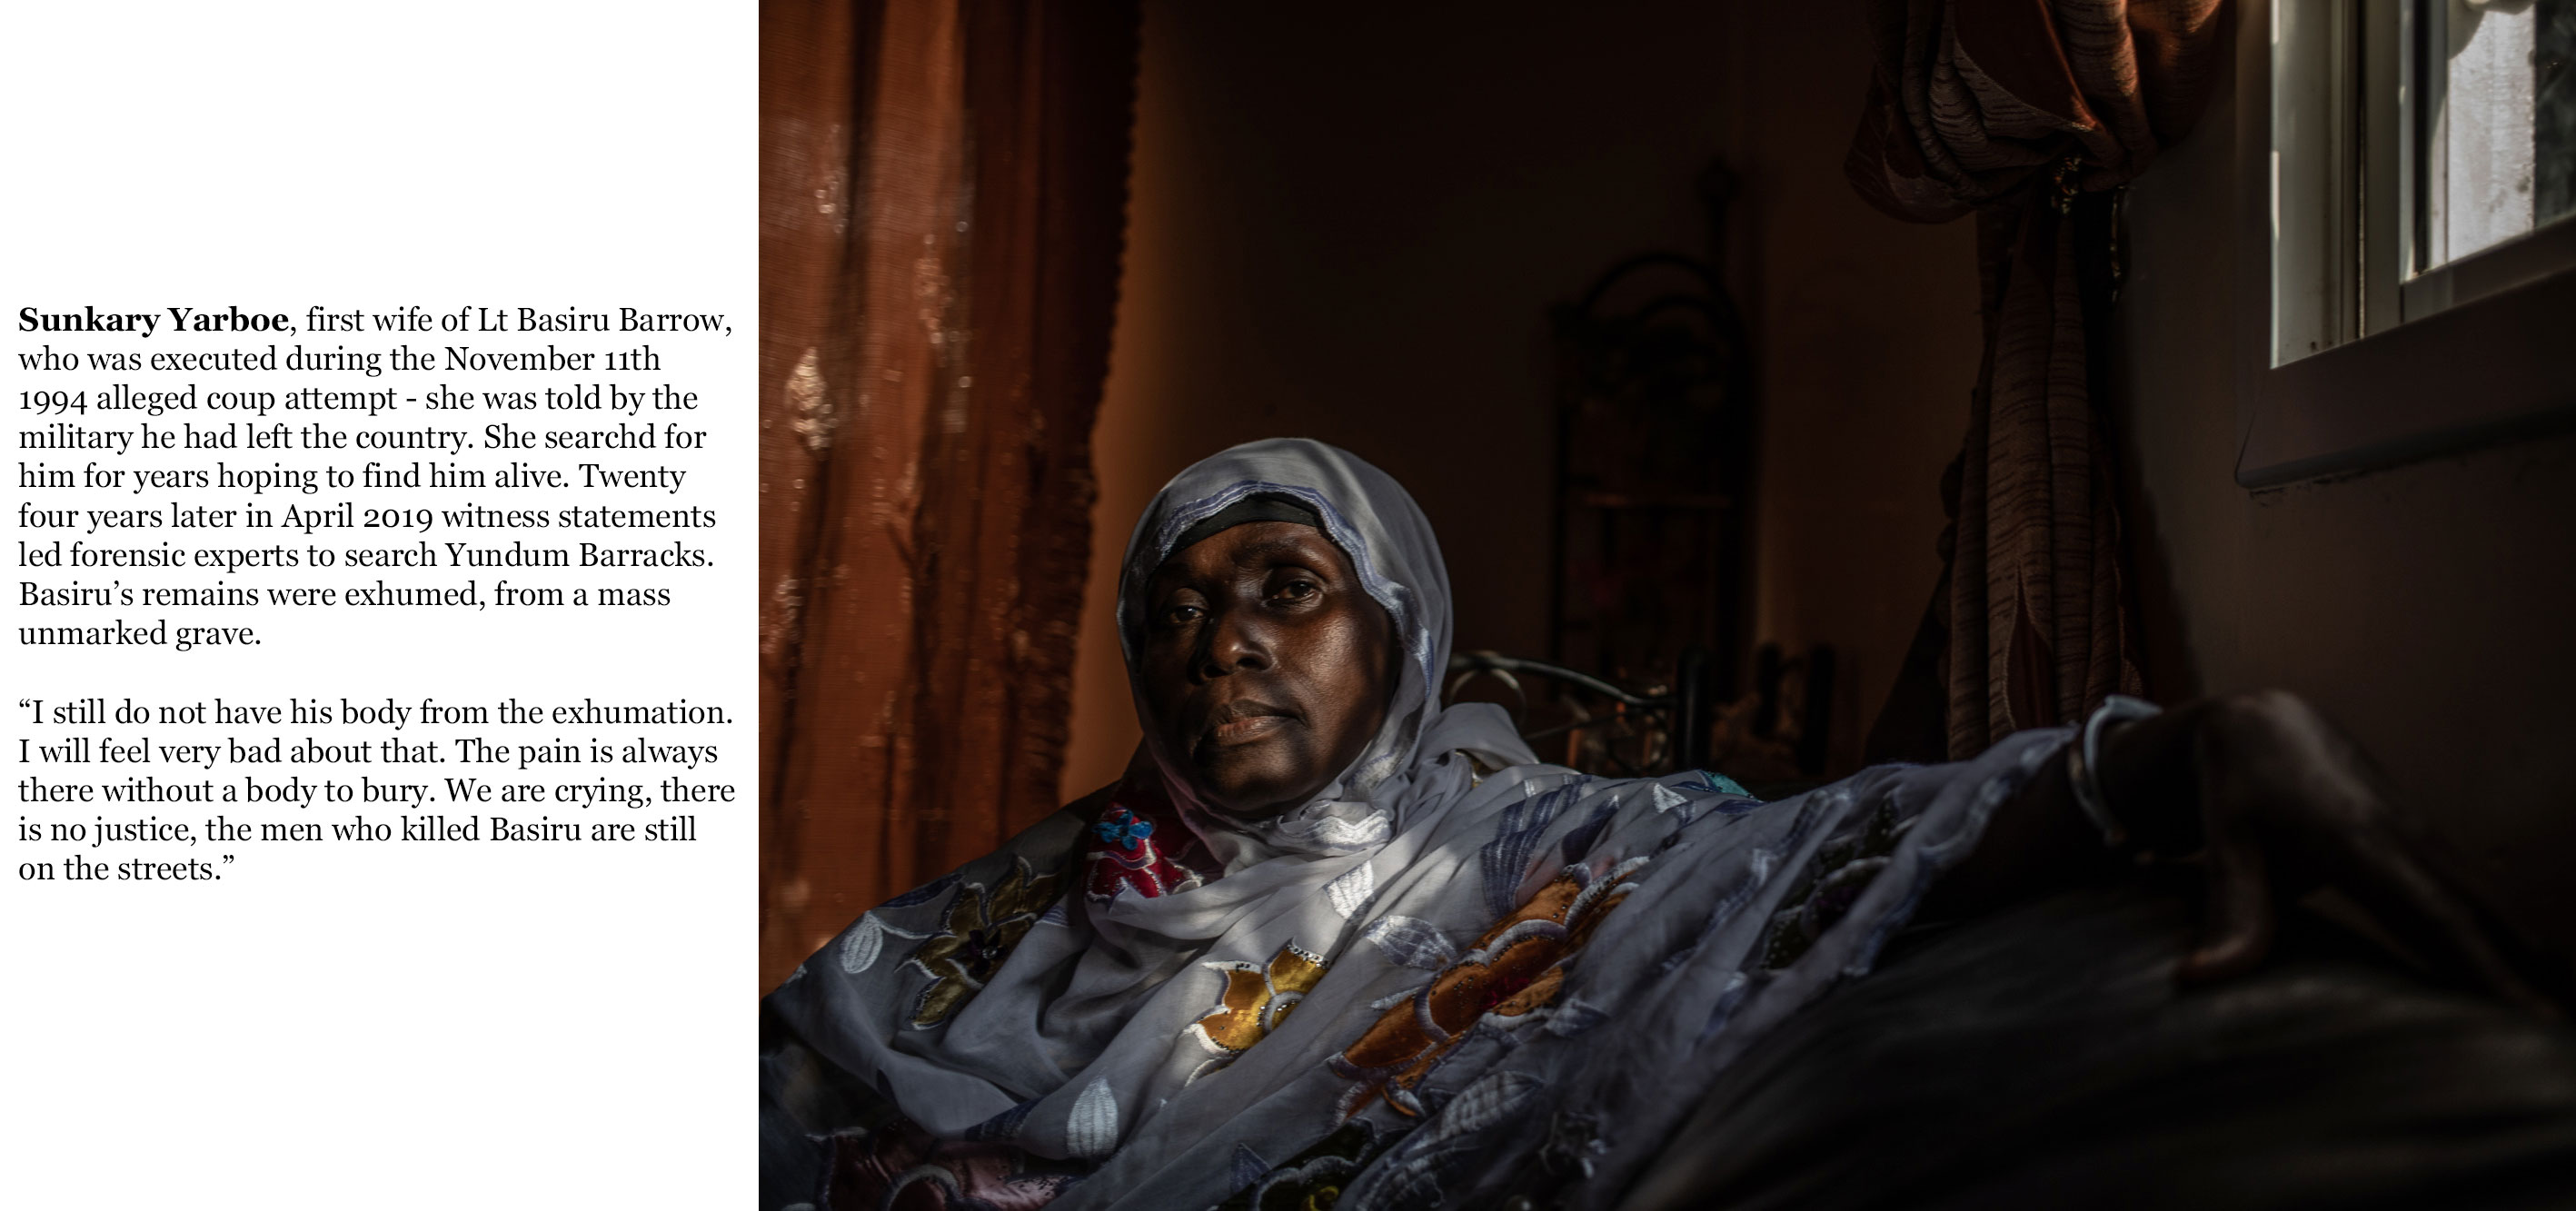 Gambia victims and resisters - sunkary_yarbo, wife of Lt Basiru Barrow, executed after 1994 coup attempt -0547_TEXT_WEB